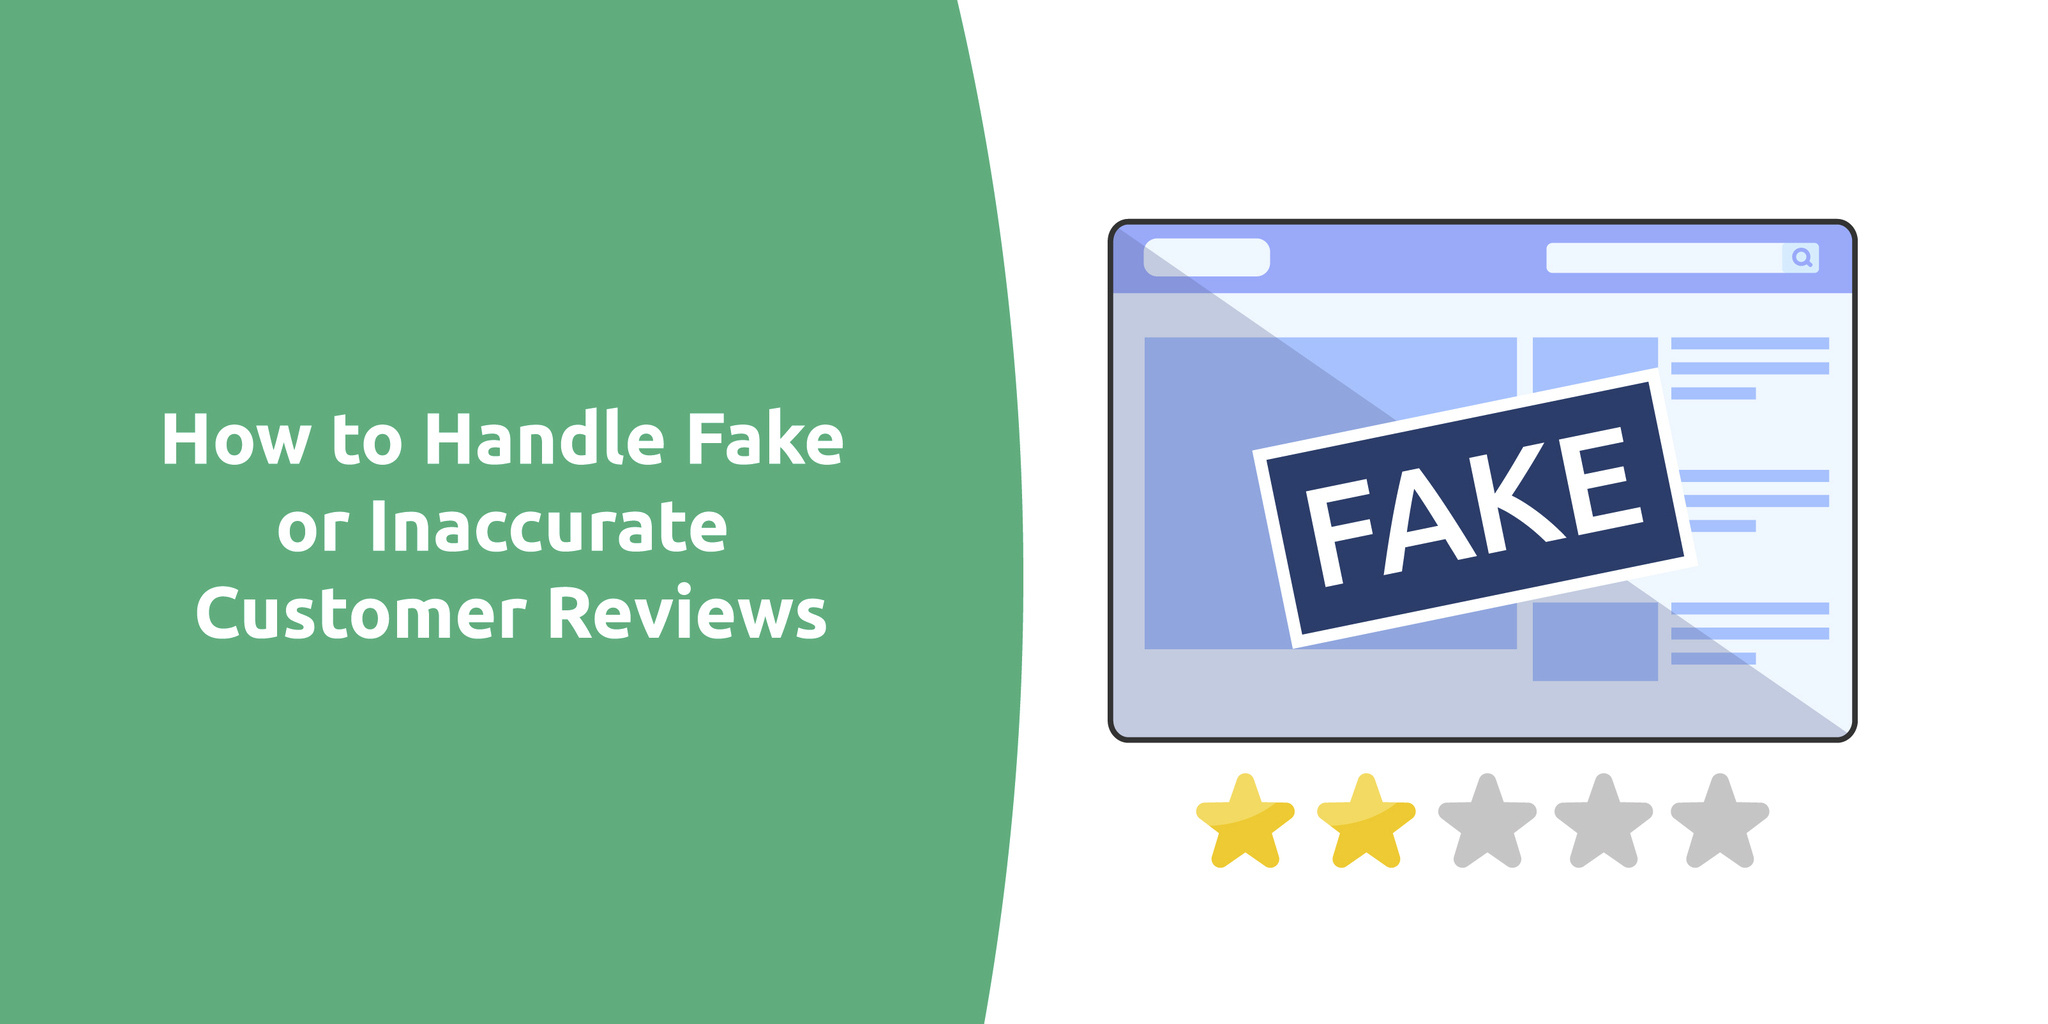 How to Handle Fake or Inaccurate Customer Reviews